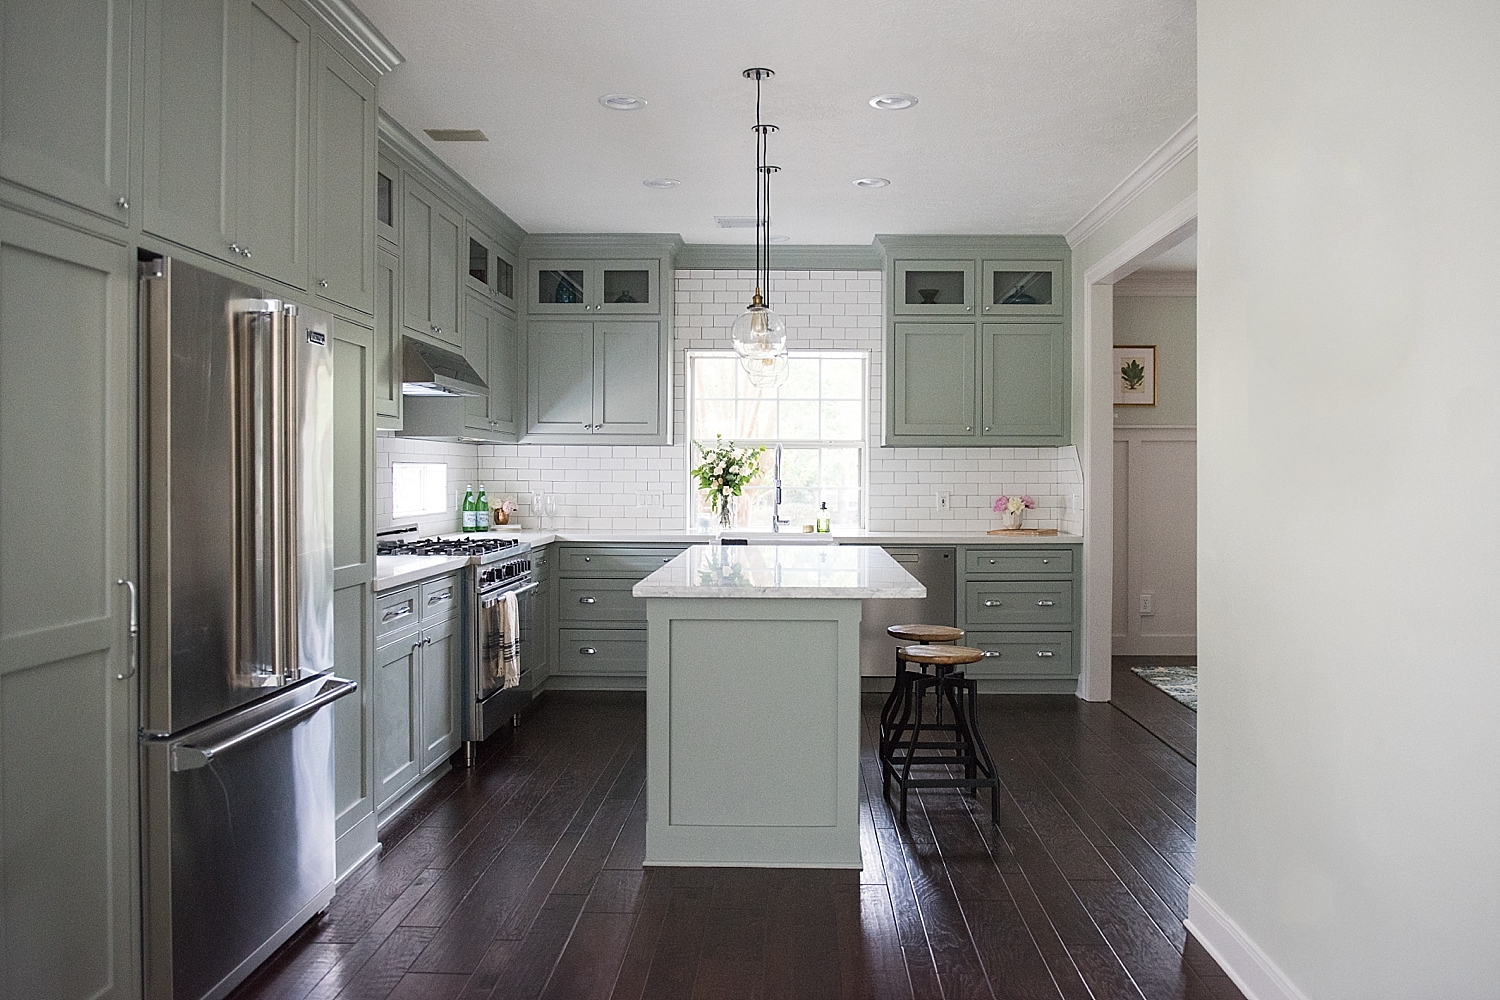 Cambridge Row Bright and airy kitchen renovation 35.jpg